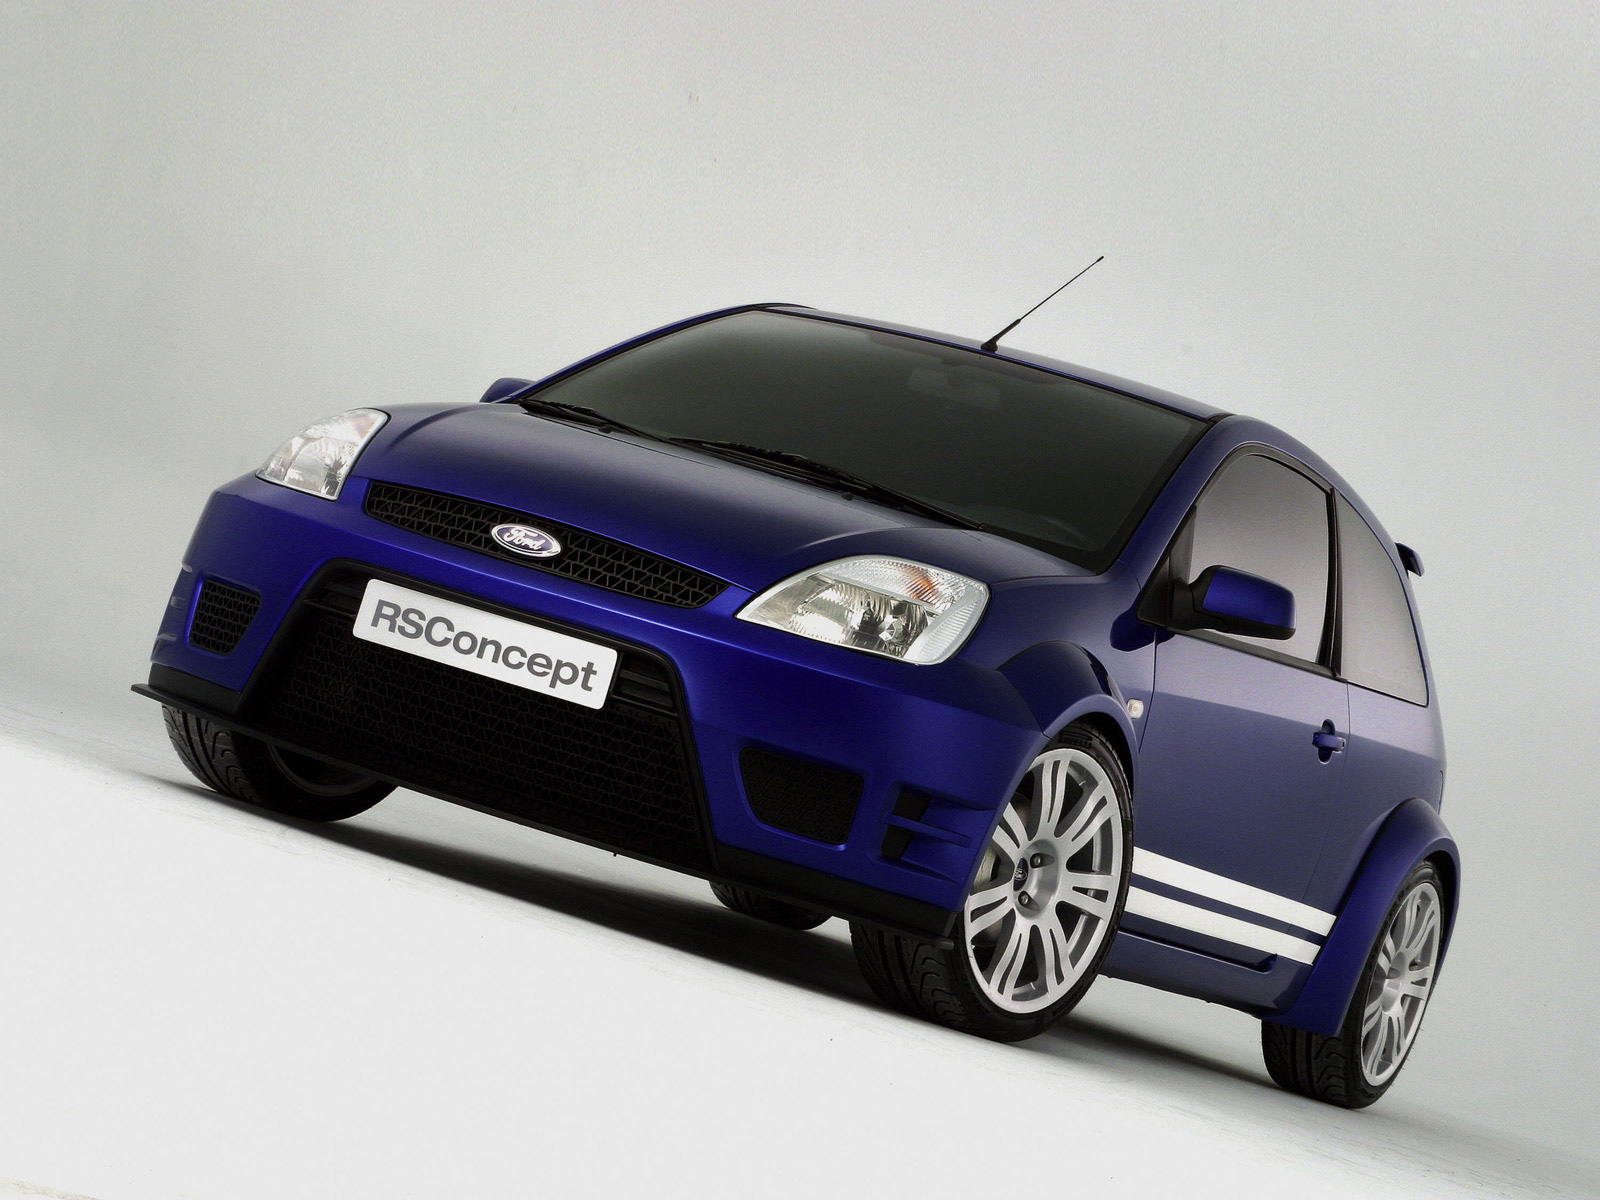 2004 Ford Fiesa RS Concept